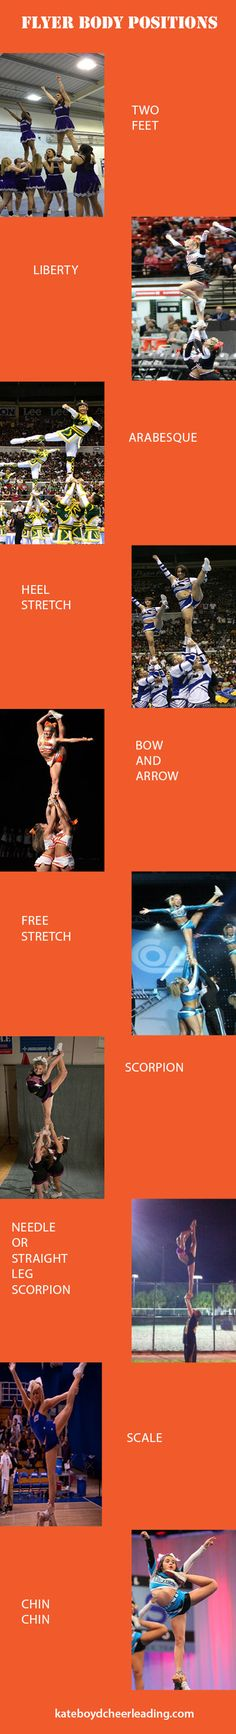 Flyer body positions - Last one makes me think. Cheer Stretches, Cheer Moves, Cheer Routines, Cheer Workouts, Cheer Stunts, Cheer Camp, Cheer Coaches, Cheer Dance, Cheer Flyer